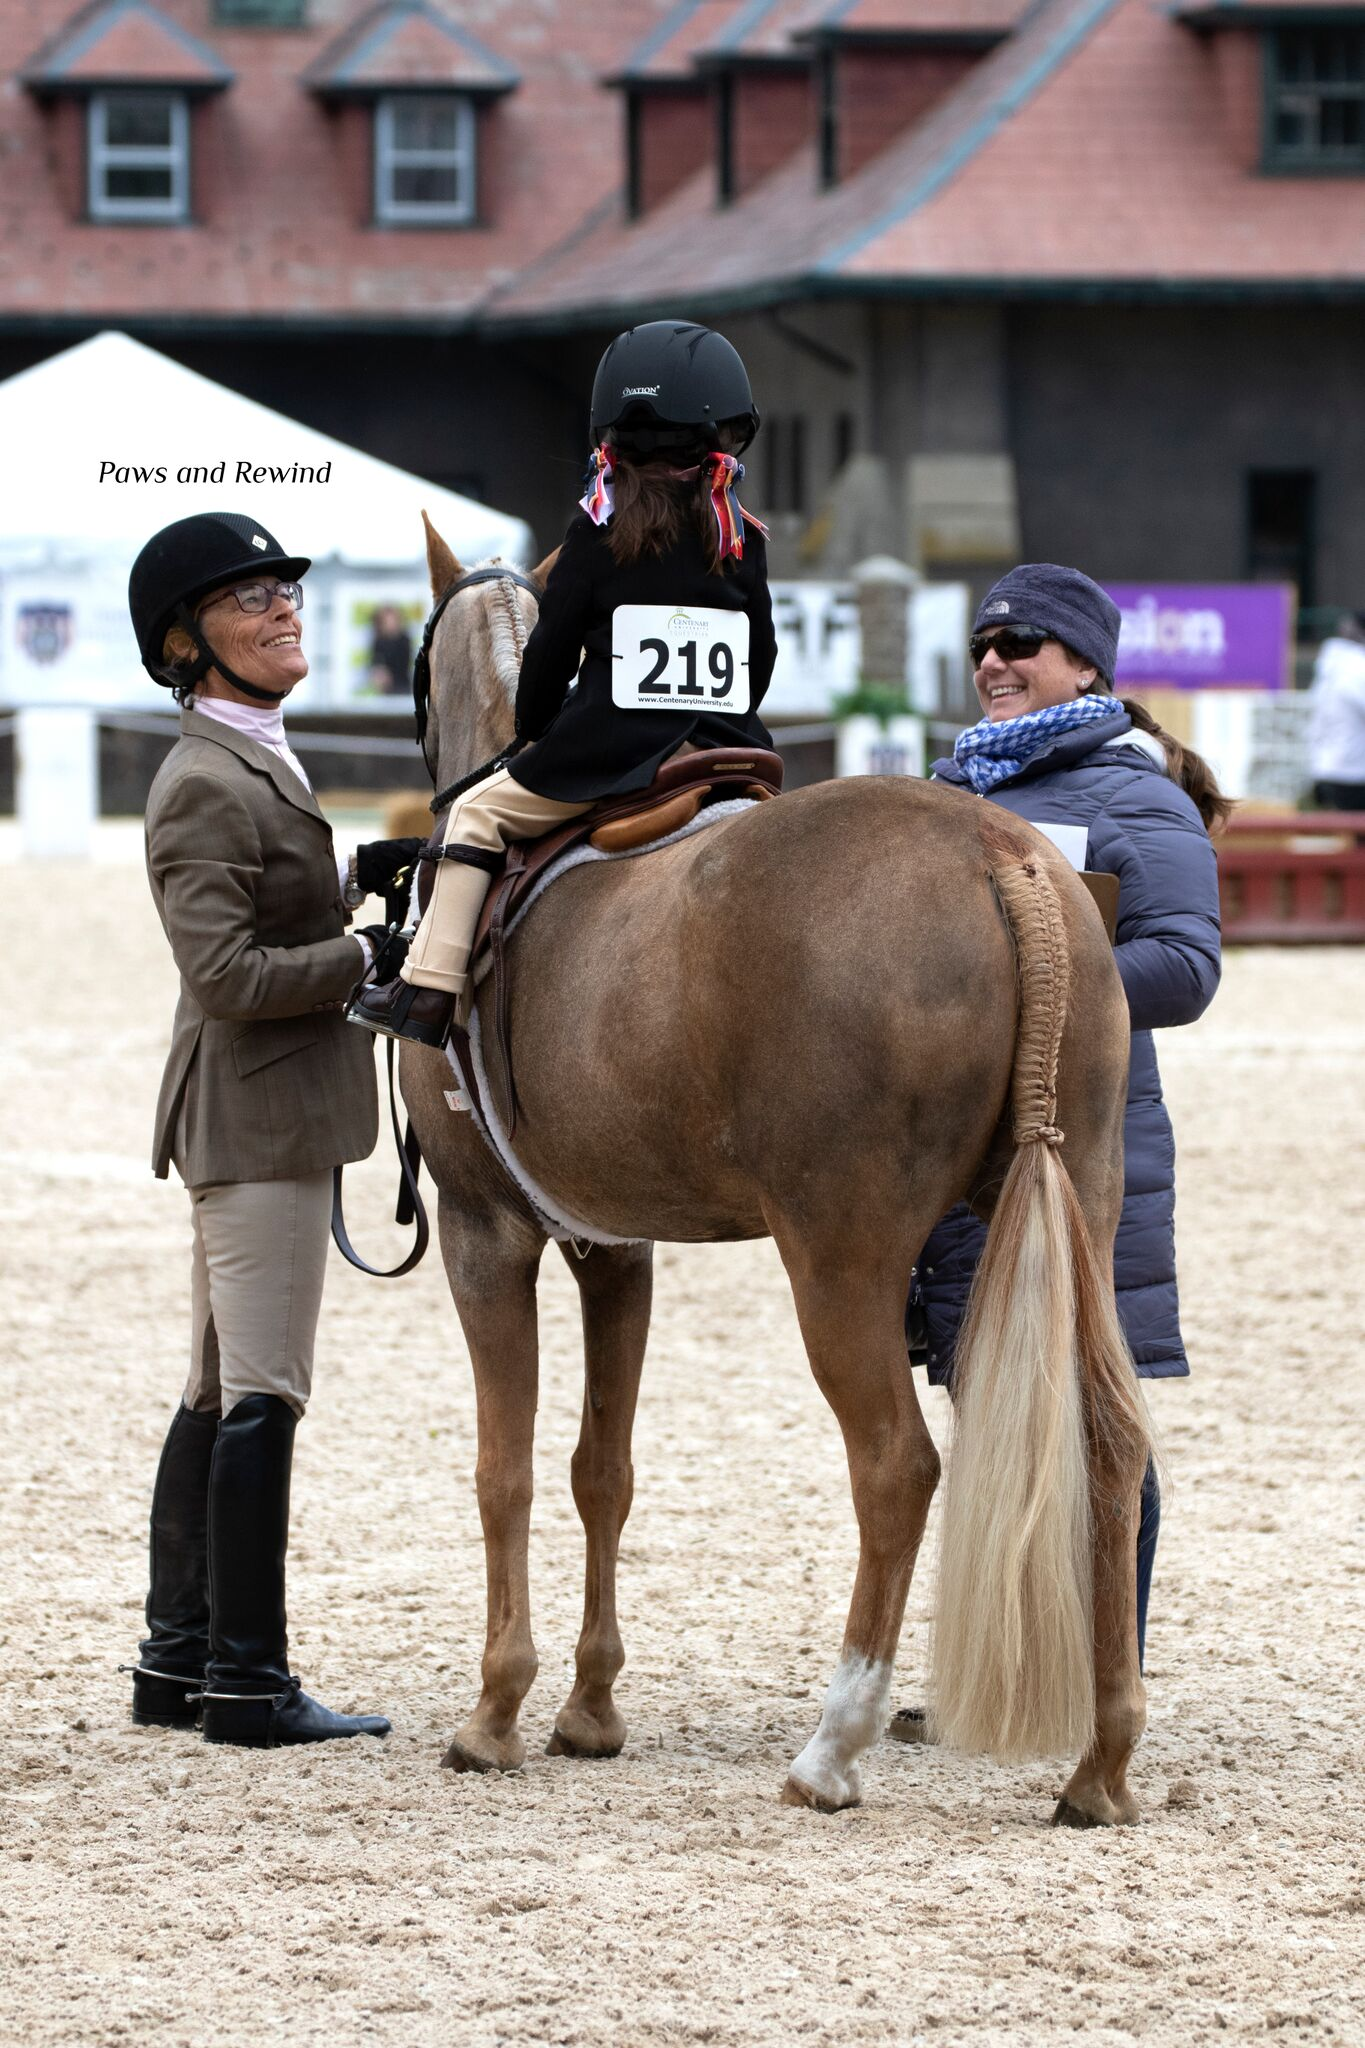 Leadline riders also took to the ring on the first day of competition. Photo By Paws and Rewind